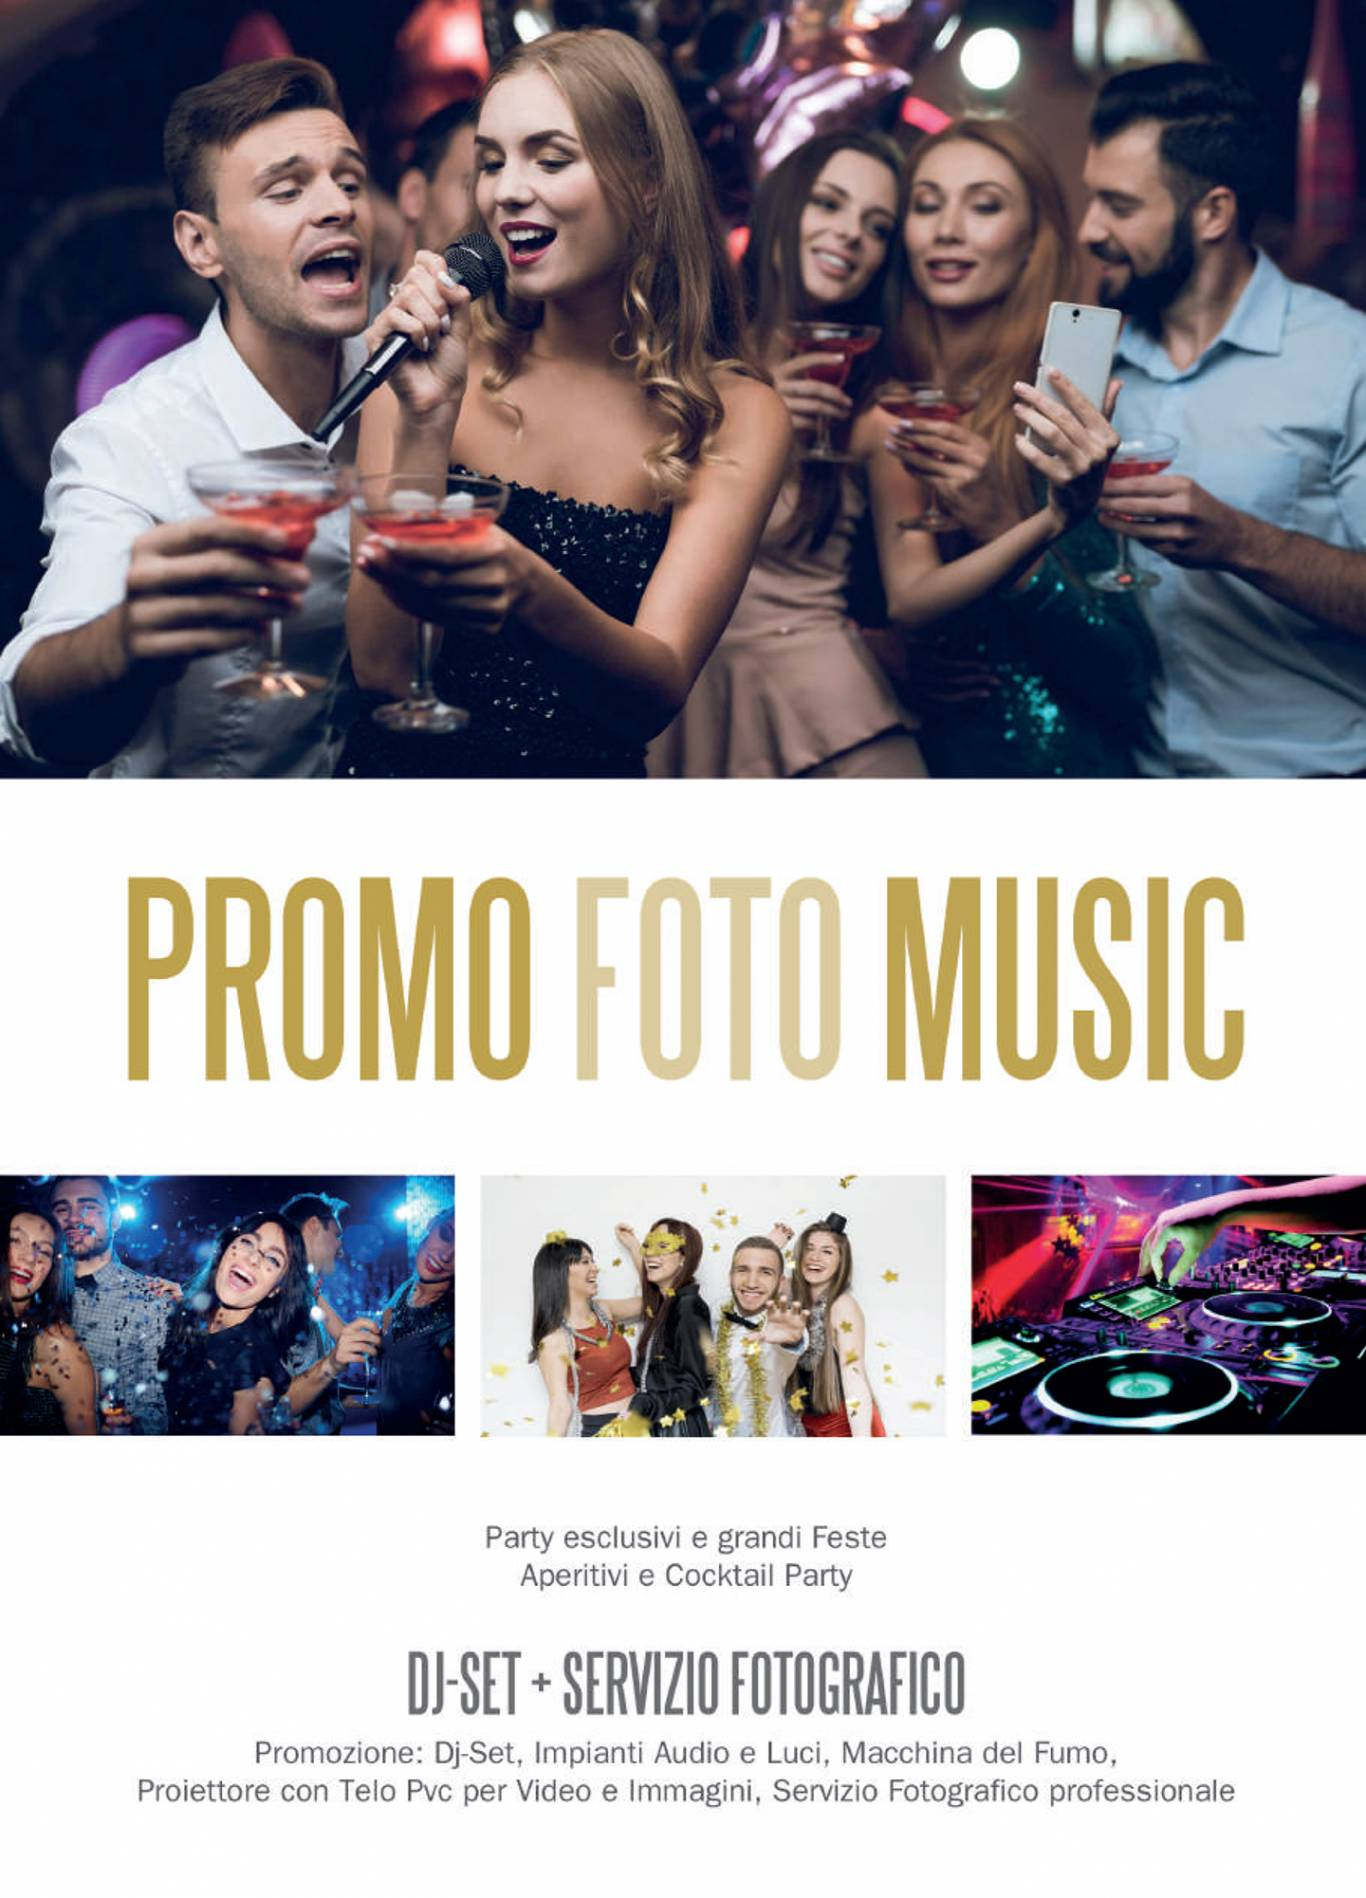 PROMO-PARTY-FOTO-MUSIC